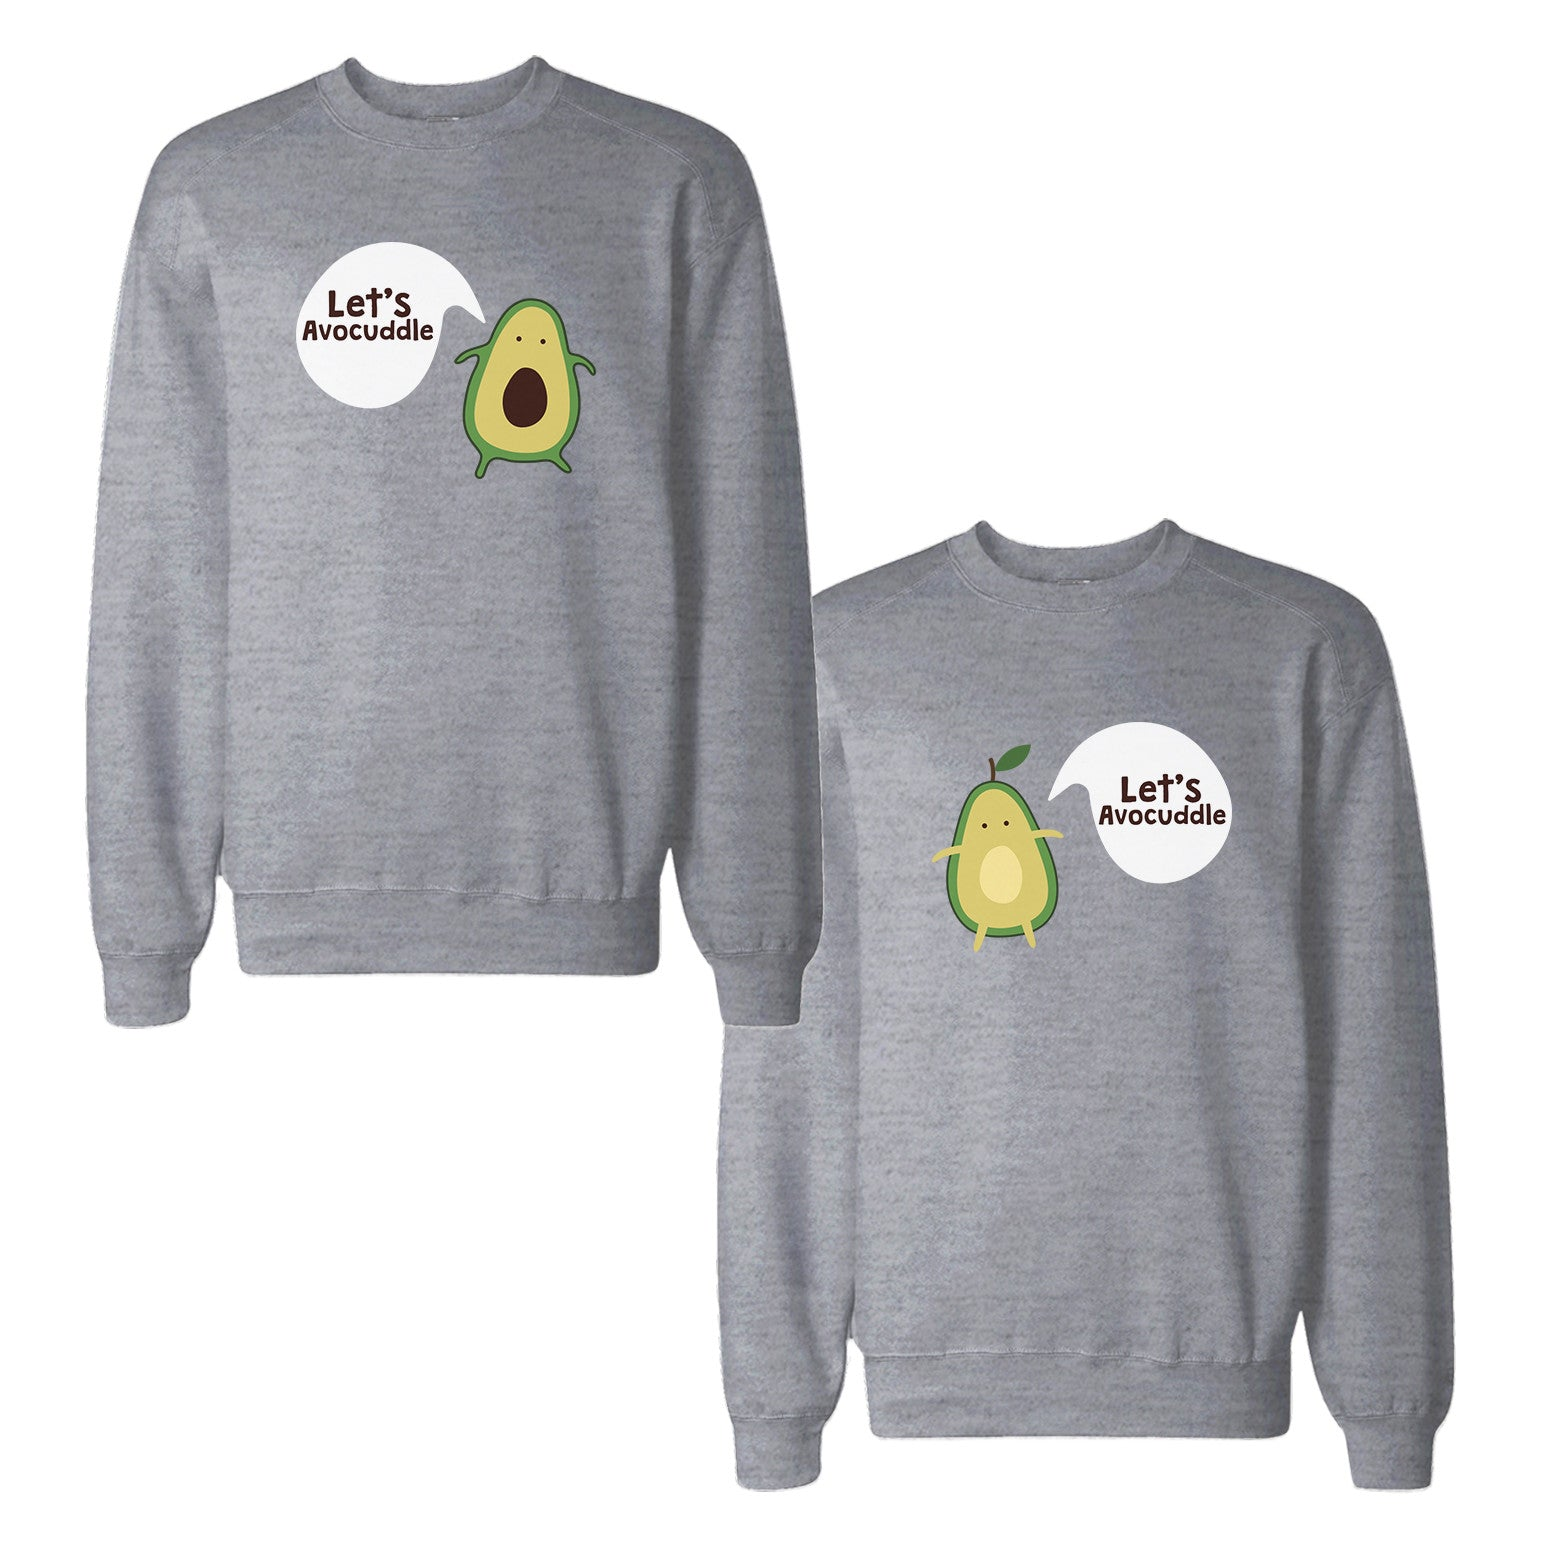 4093414571 Let's Avocuddle Couple Sweatshirts Cute Matching Gifts For Christmas ...